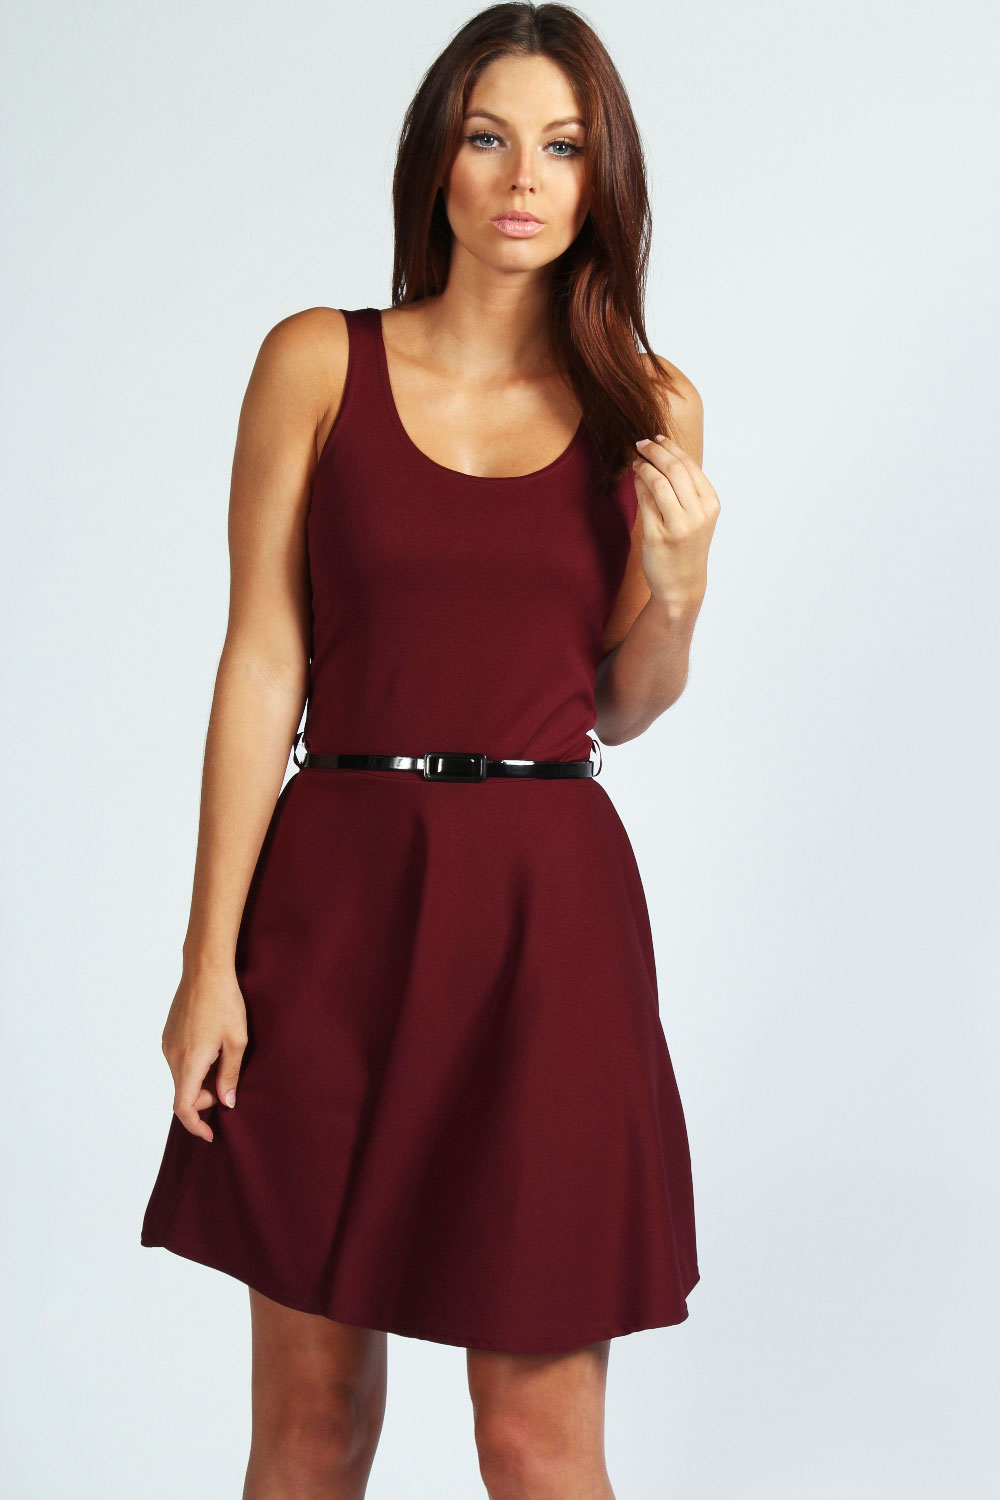 Find great deals on eBay for ladies skater dress. Shop with confidence.